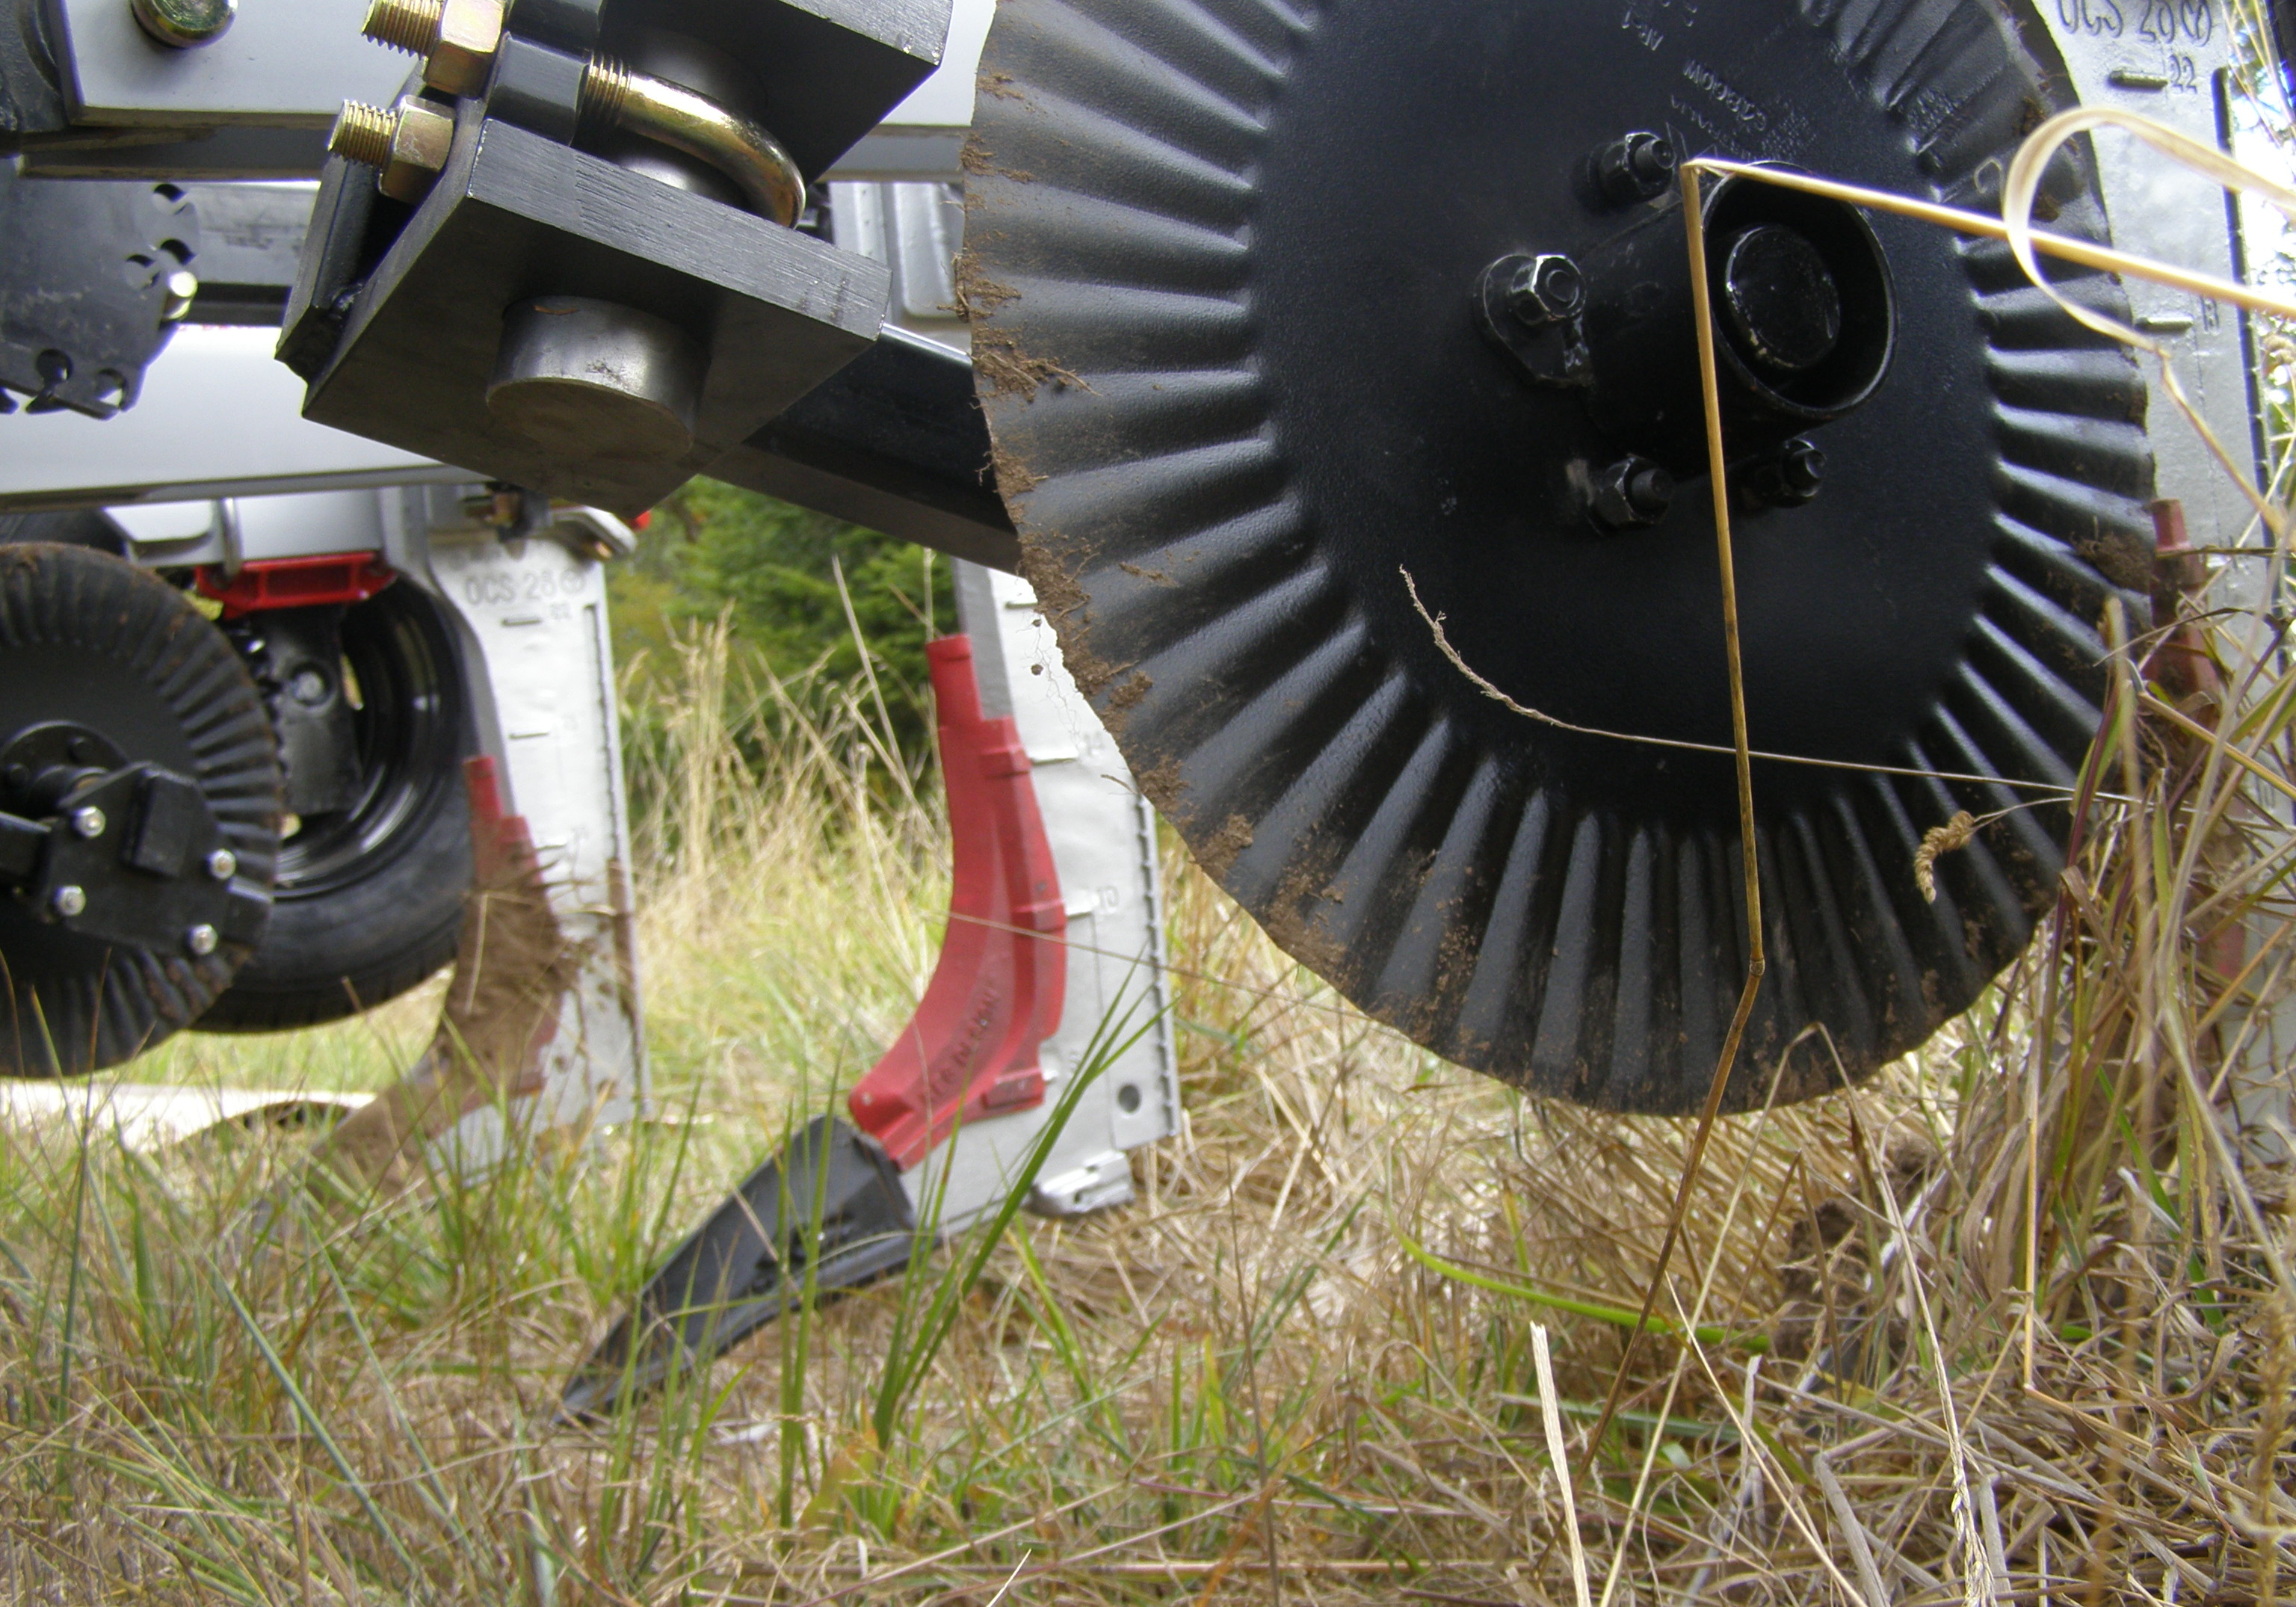 The 'Keyline Plow' coulter and shanks, designed for minimal surface disturbance.